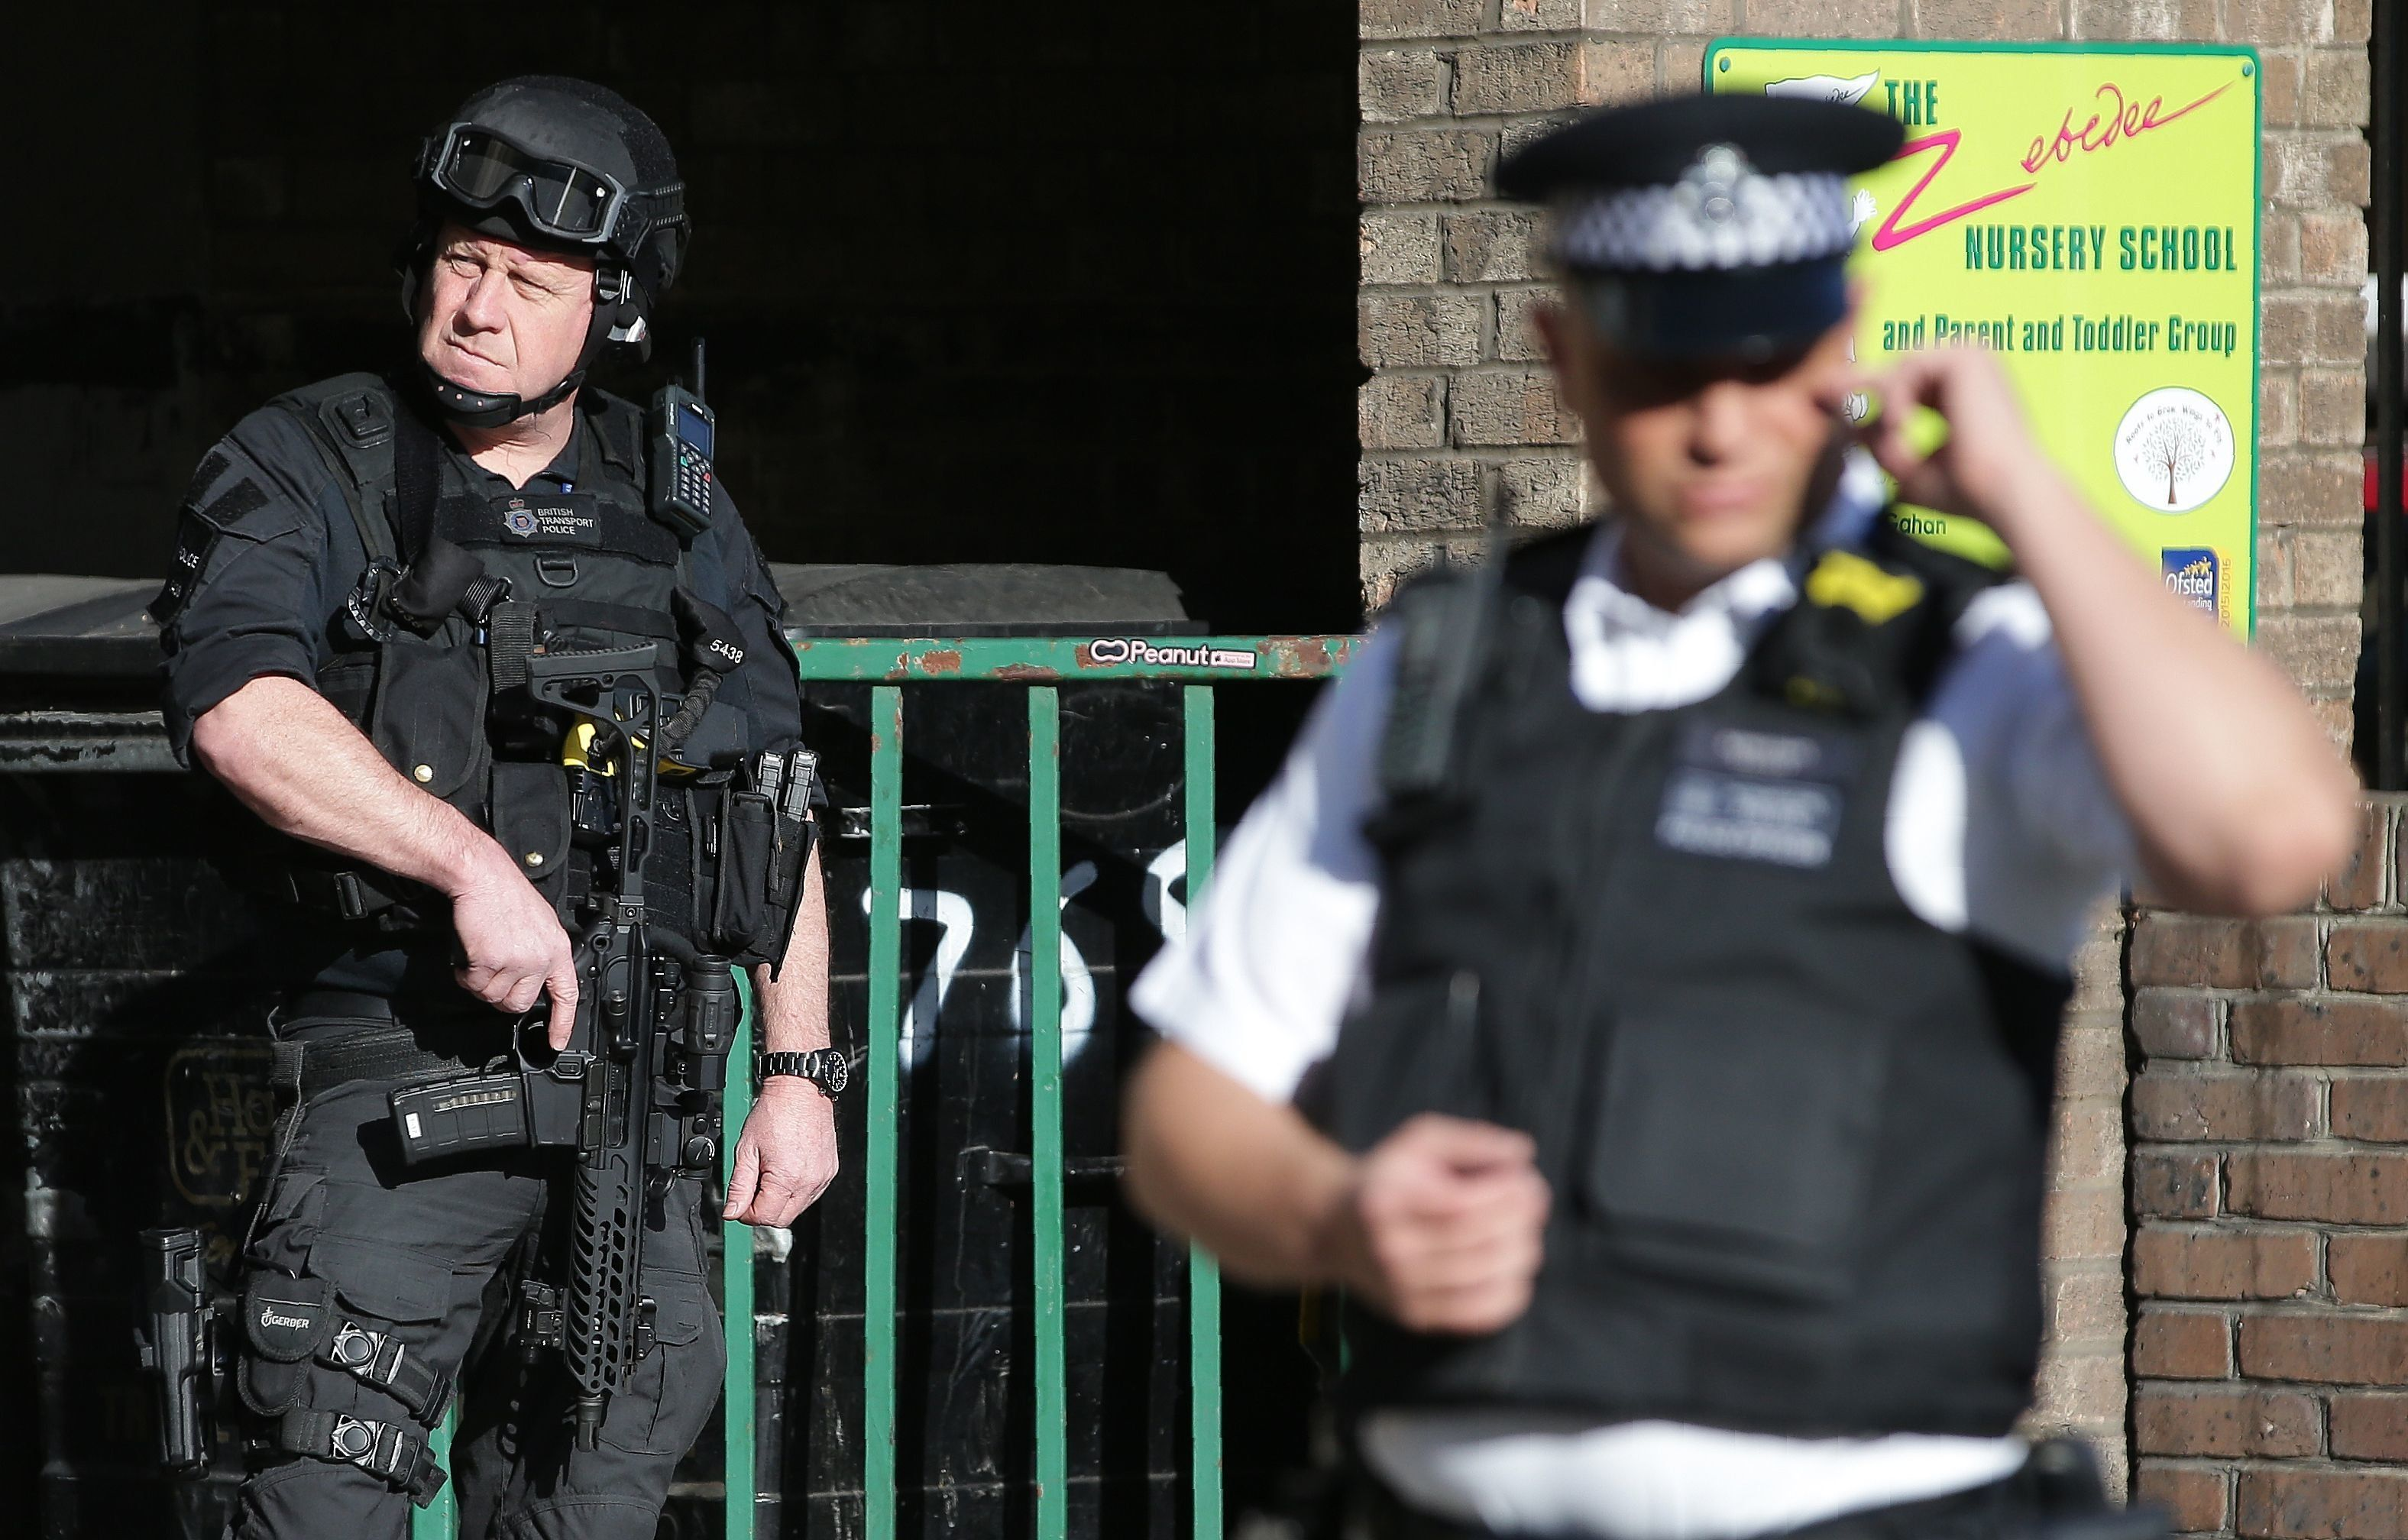 Police Warn Public To Flee Instead Of Taking Photos During Terror